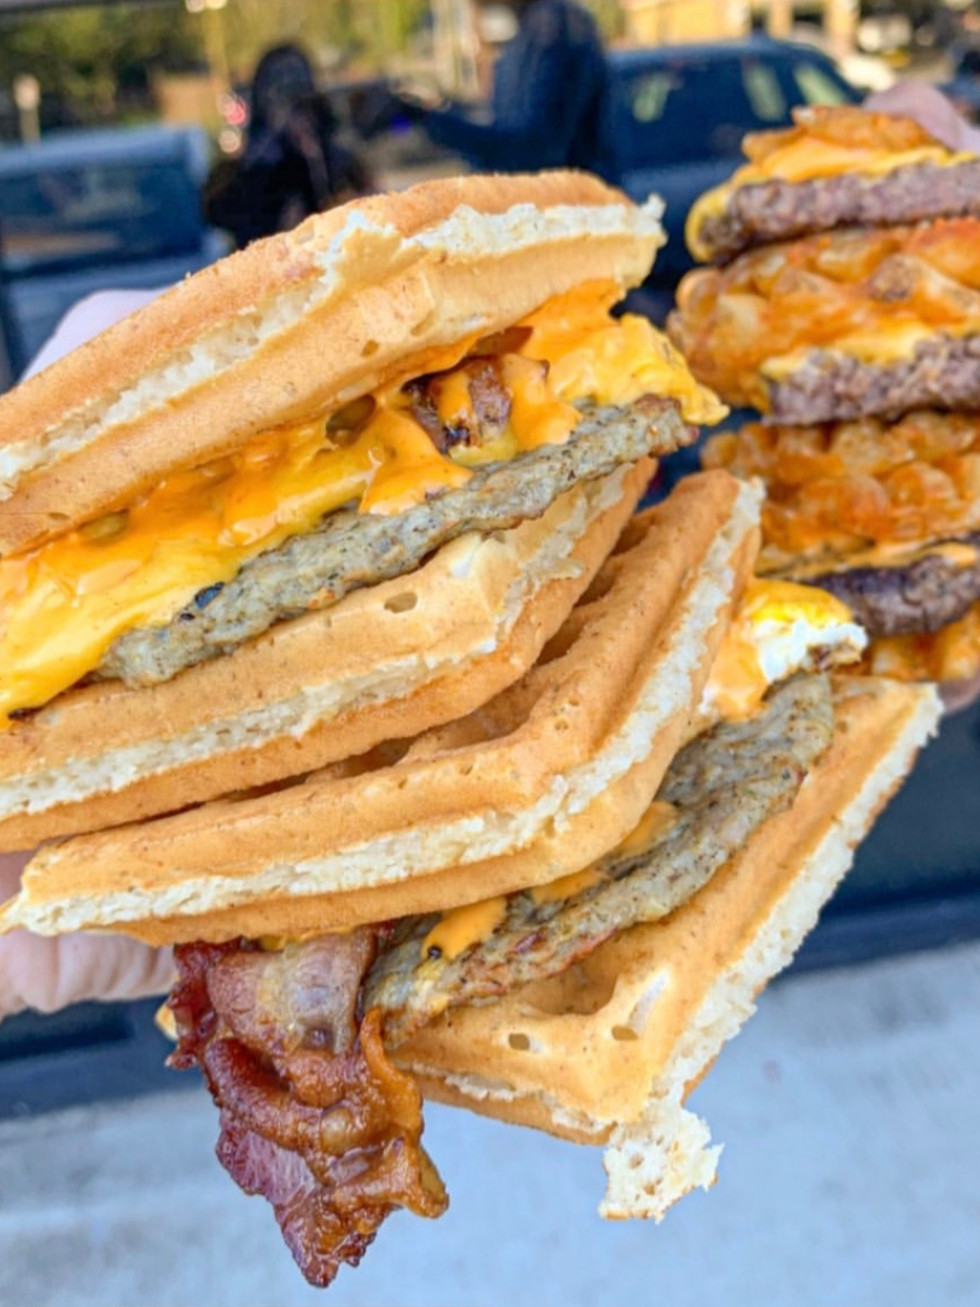 The Waffle Bus Heights sandwich burger